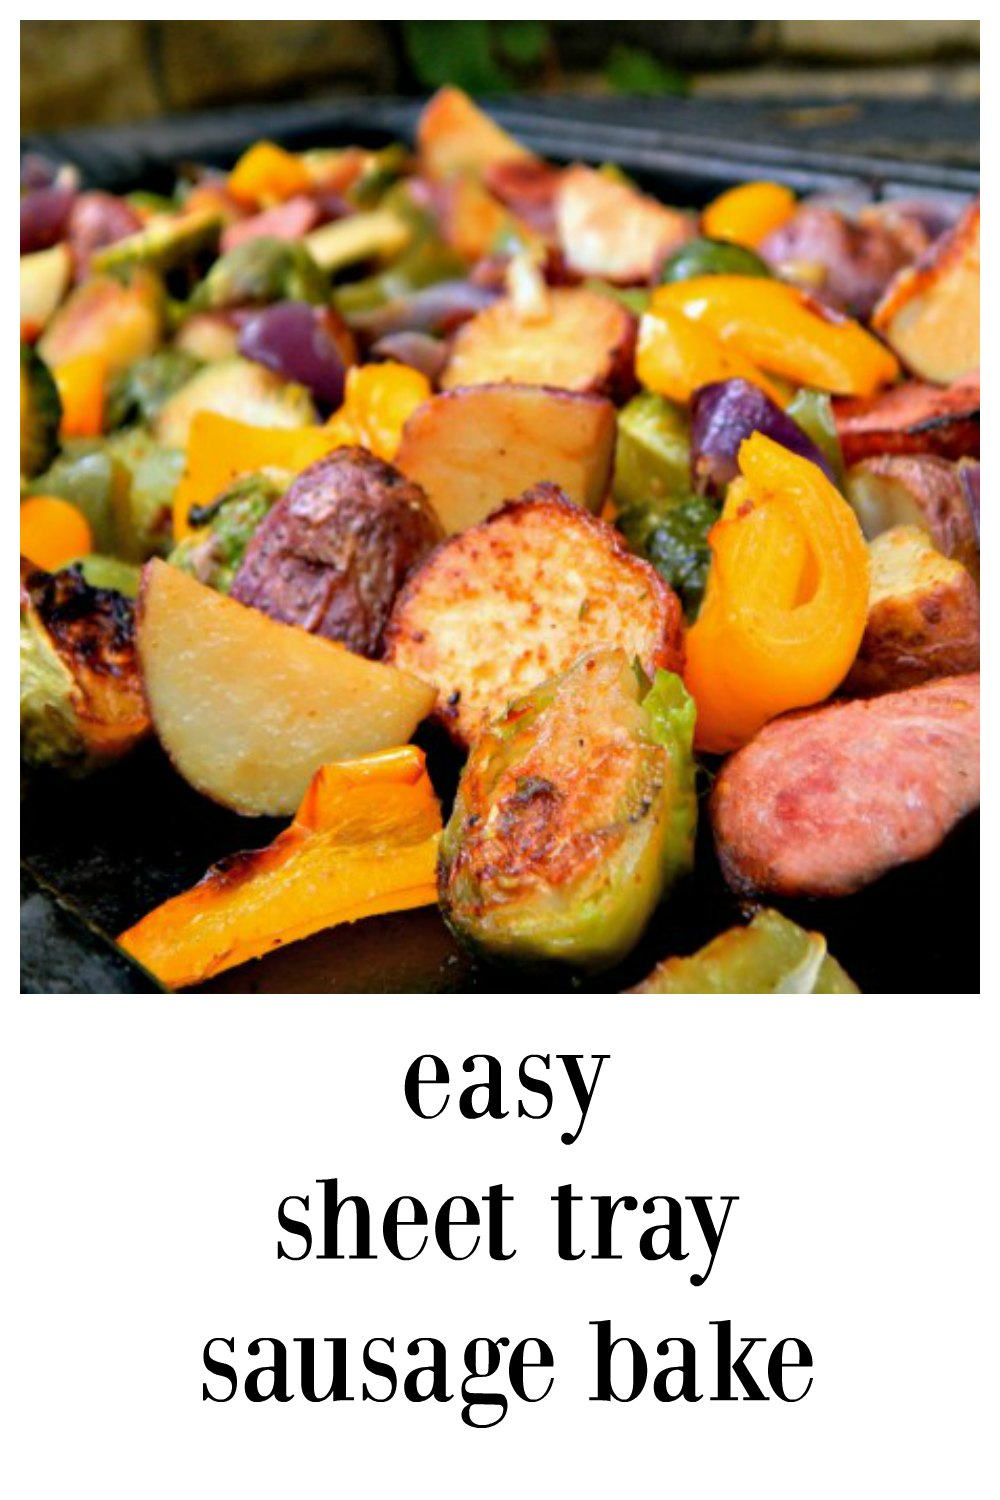 A couple of no effort secrets are going to make this the best Easy Sausage Sheet Tray Bake! Everything is beautifully browned & there's flavor for days! #EasySausageSheetTrayBake #SmokedSausageSheetTrayBake